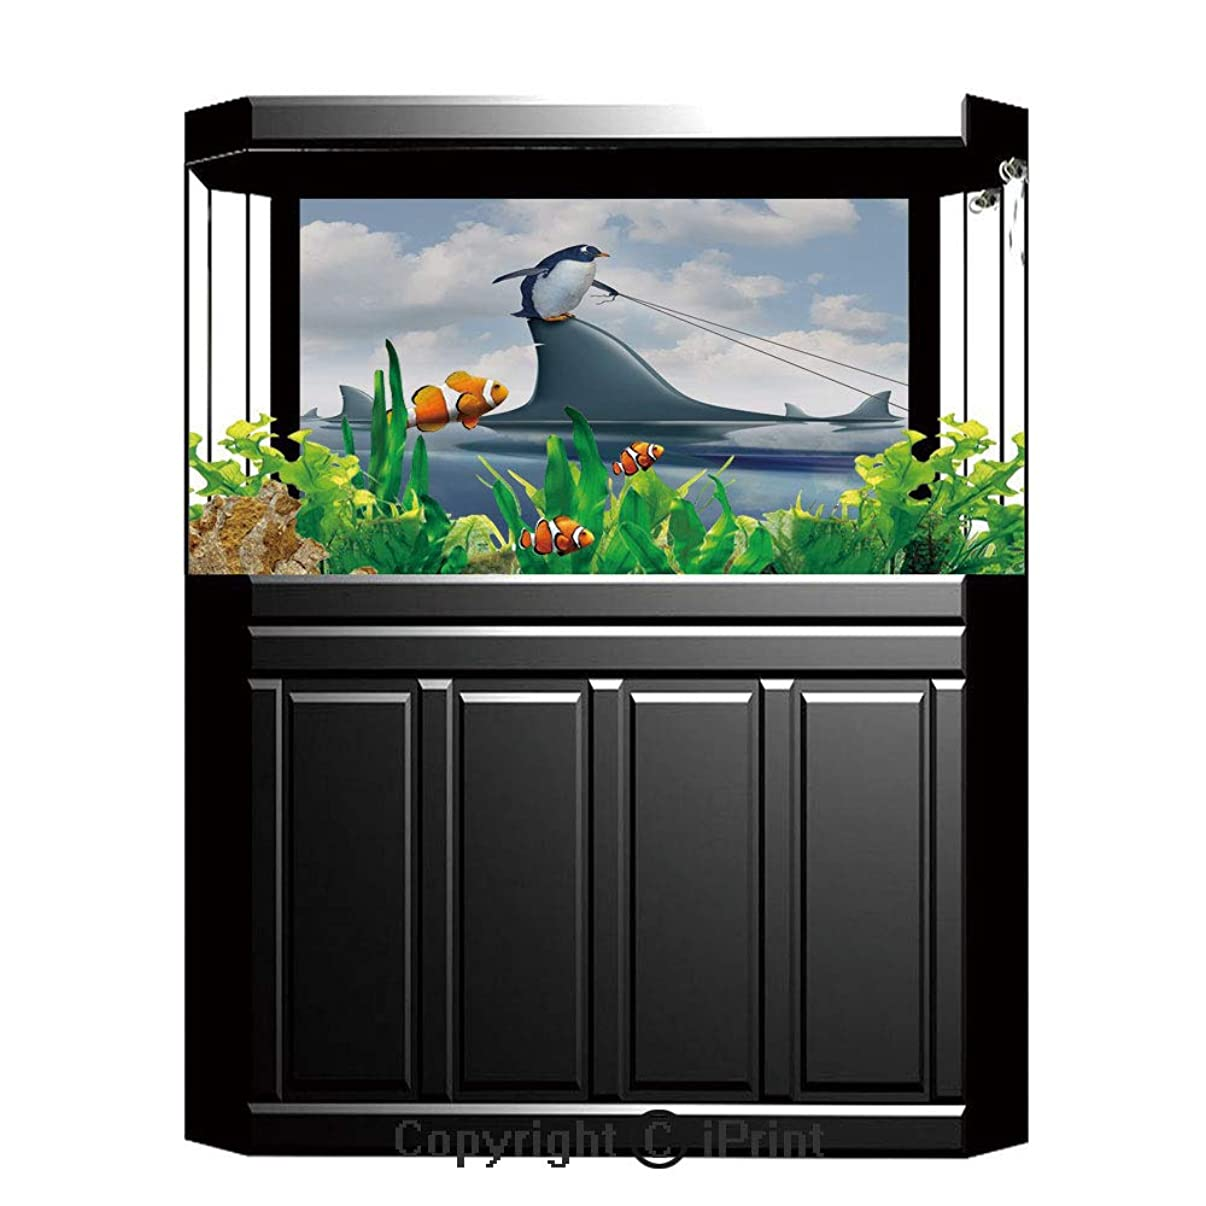 Aquarium Fish Tank Background,Shark,Fear Management Leadership Concept with A Penguin Holding Shark Humor Design Decorative,Blue Grey Dust,Decor Paper Green Water Grass Aquatic Style Like Real,W24.02